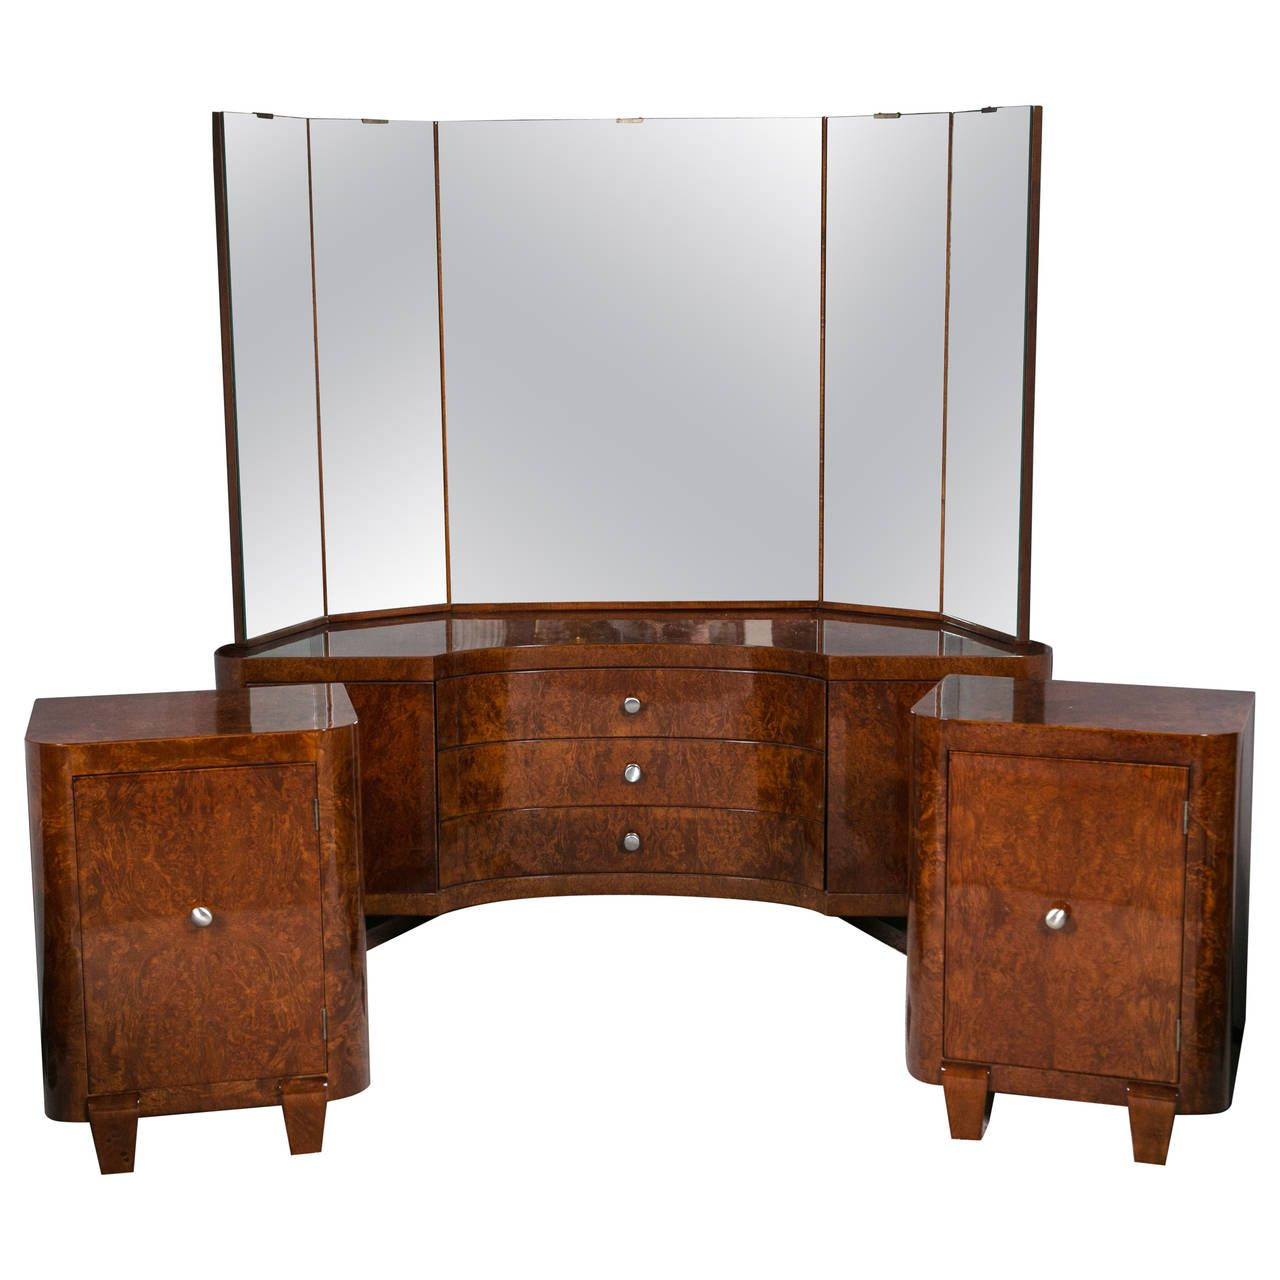 Burlwood Art Deco Vanity Or Dressing Table With Two Matching Night Stands